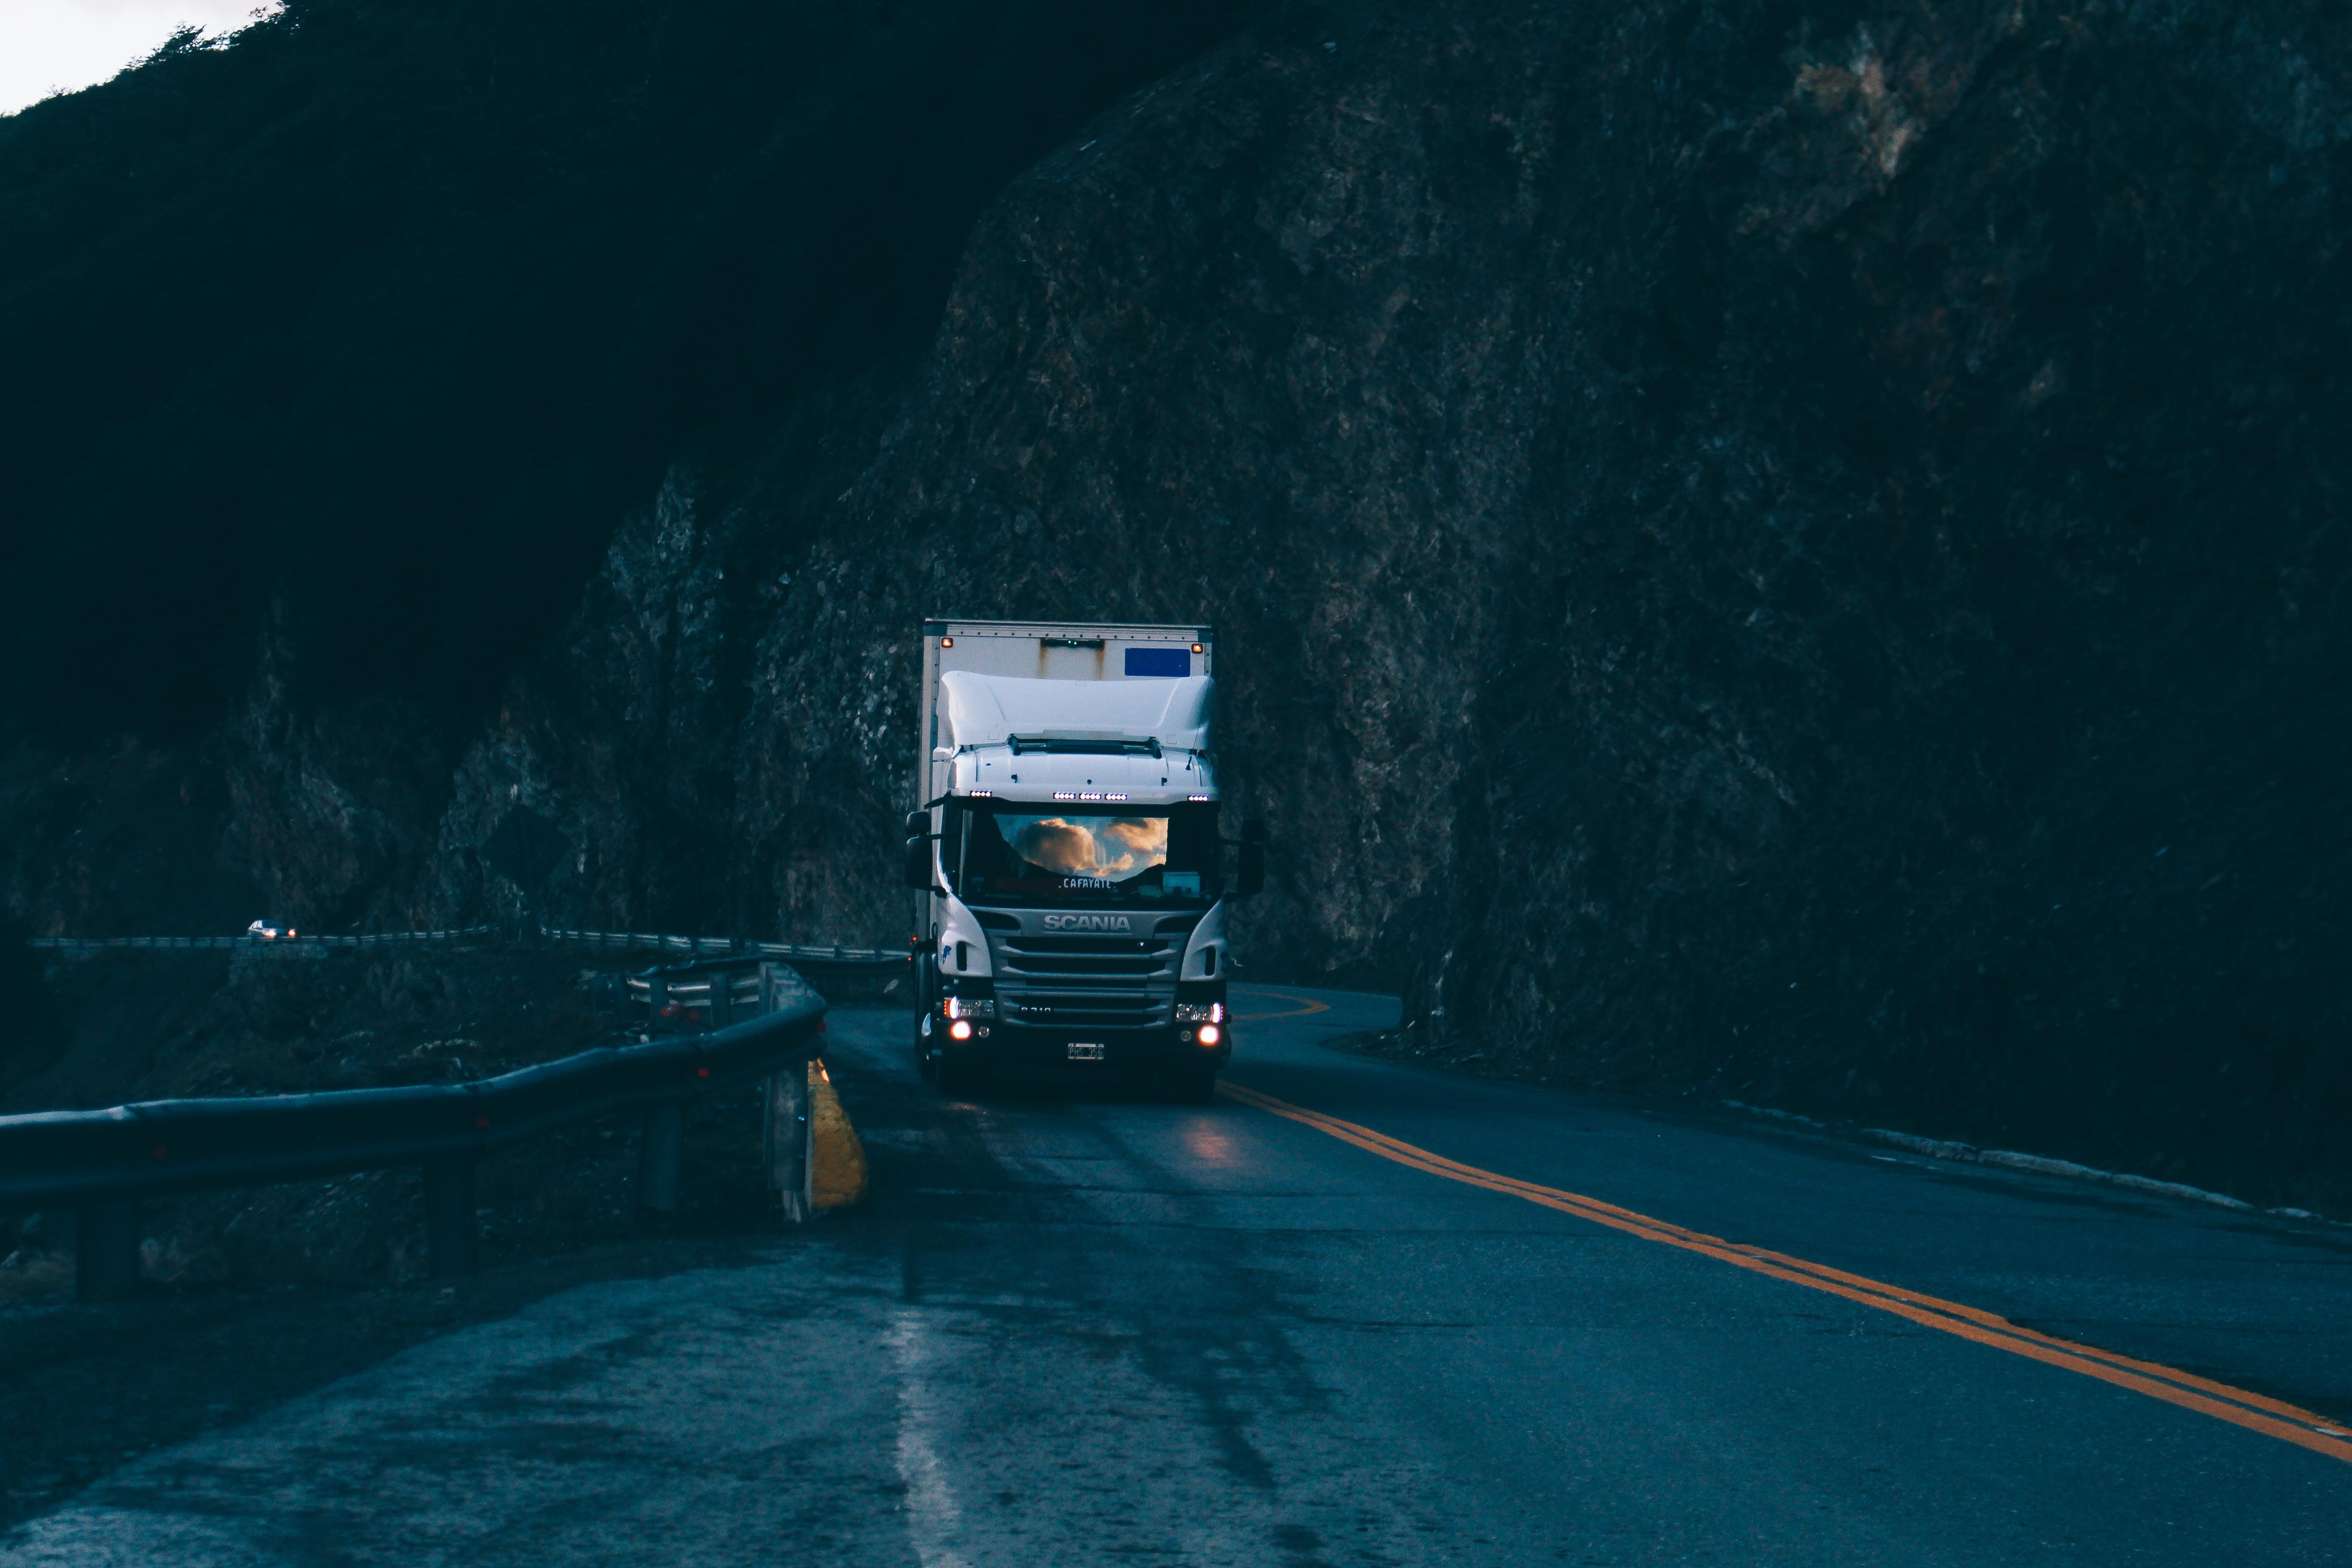 A silver Scania truck driving down an empty road in the mountains in the evening